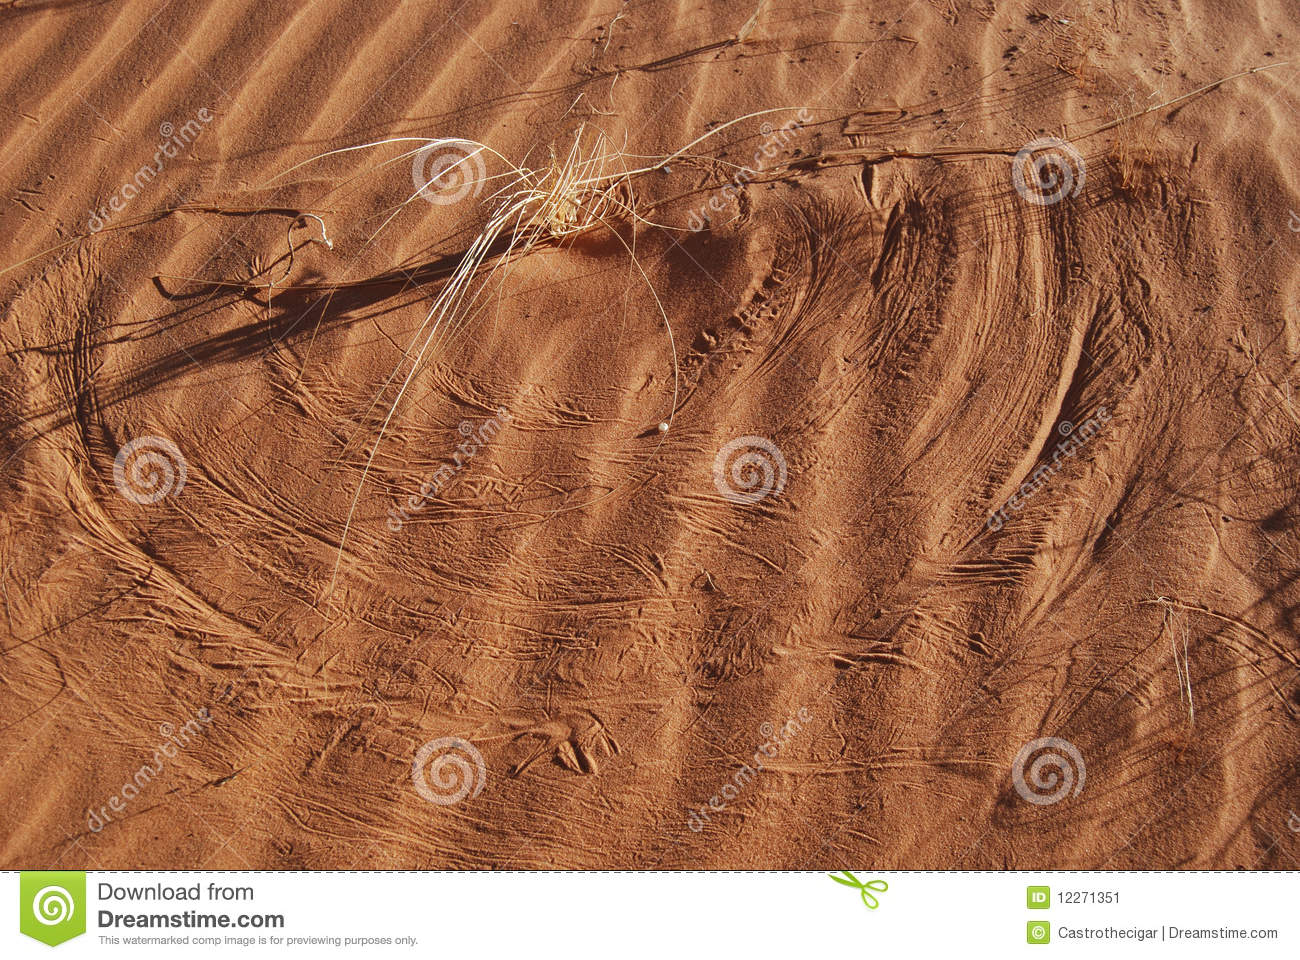 how to draw sand dunes